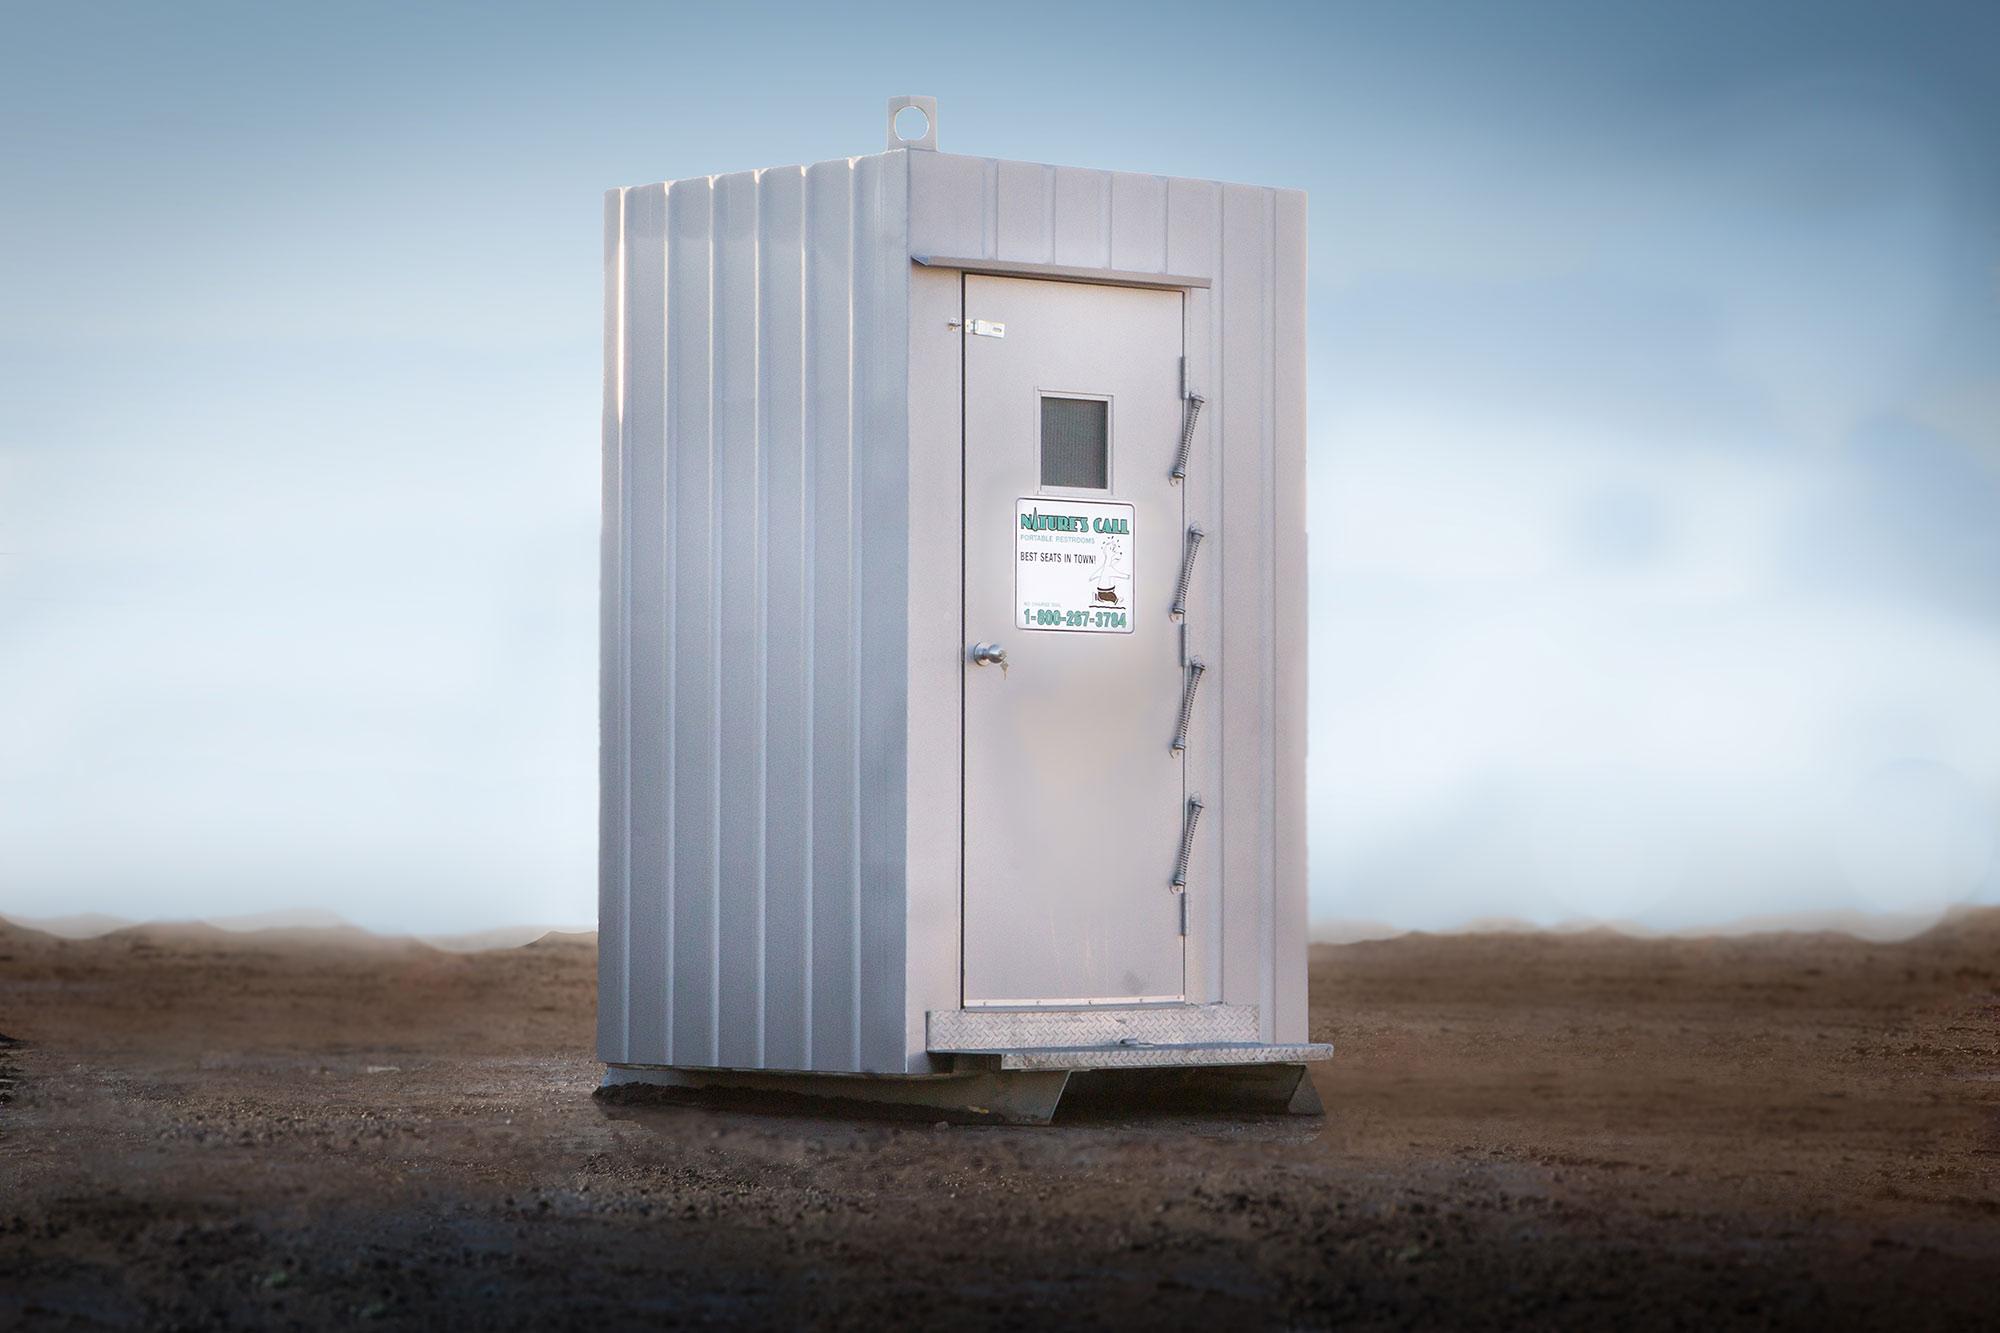 a self-contained portable restroom